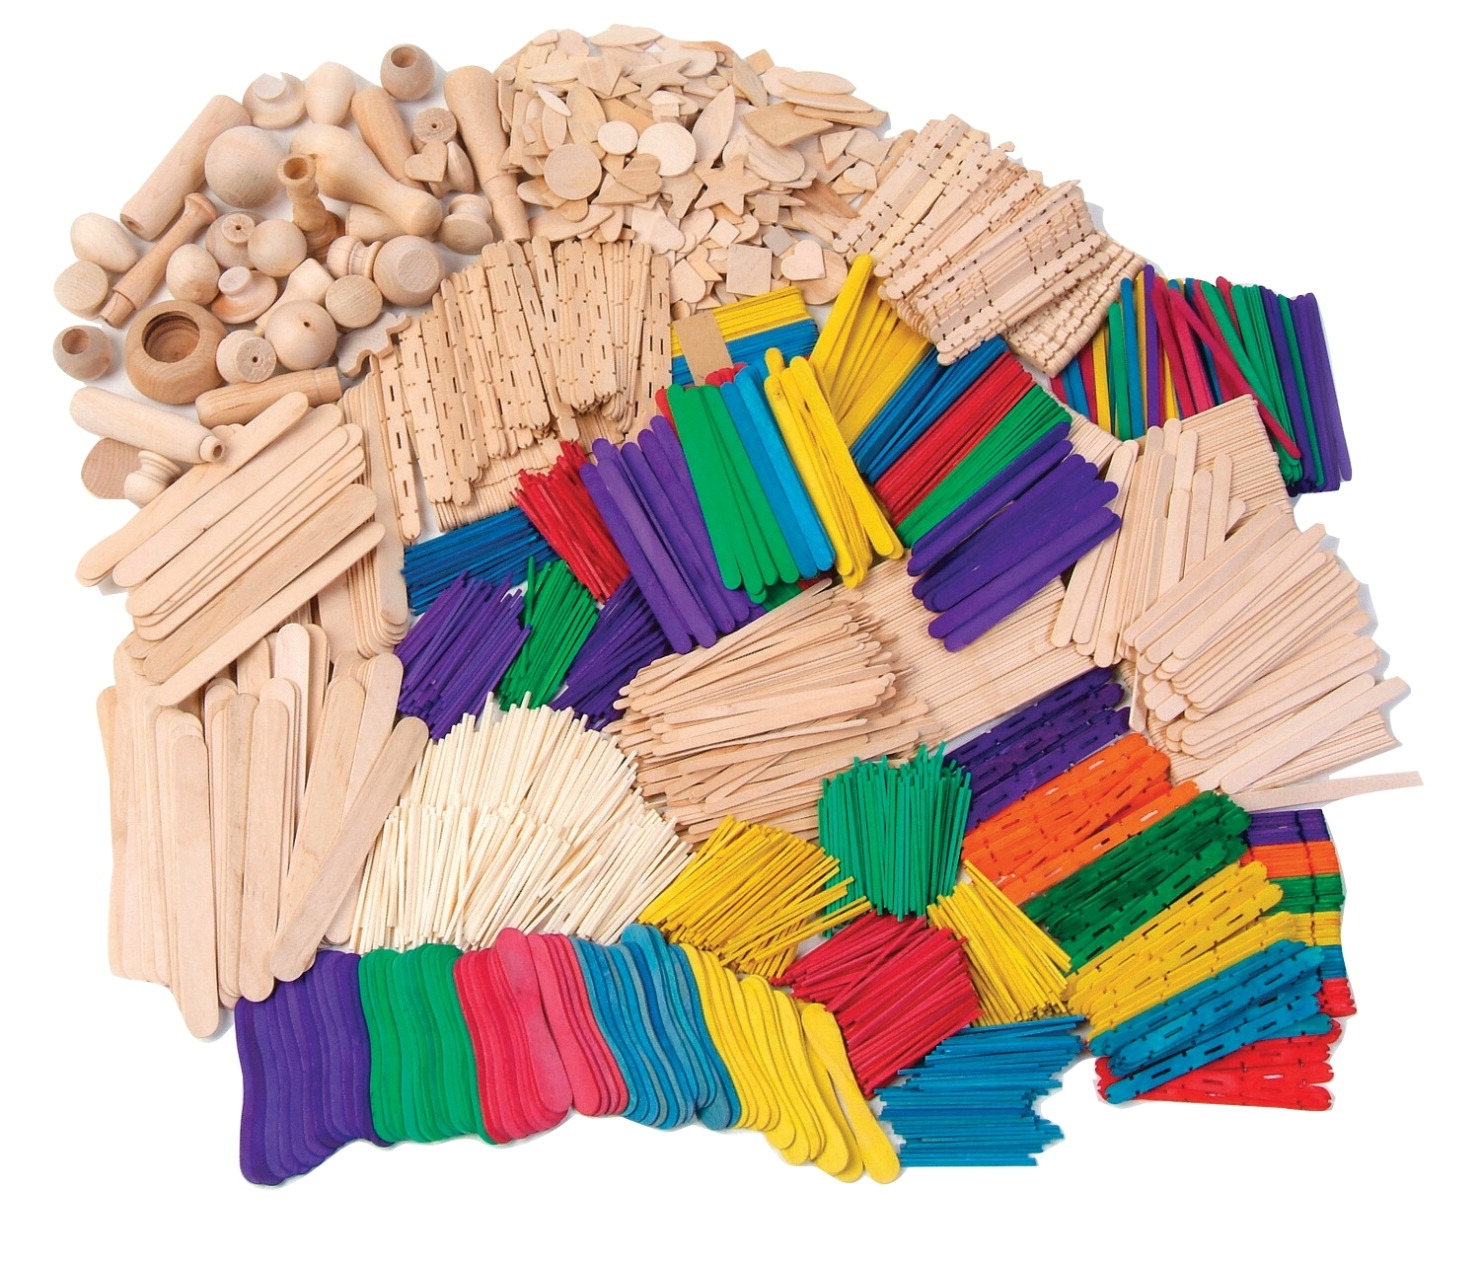 Learning: Classroom Arts & Crafts Crafts Woodcrafts - 041357 - Creativity Street Wood Craft Activity Kit; Assorted Colors; Pack Of 2100 041357